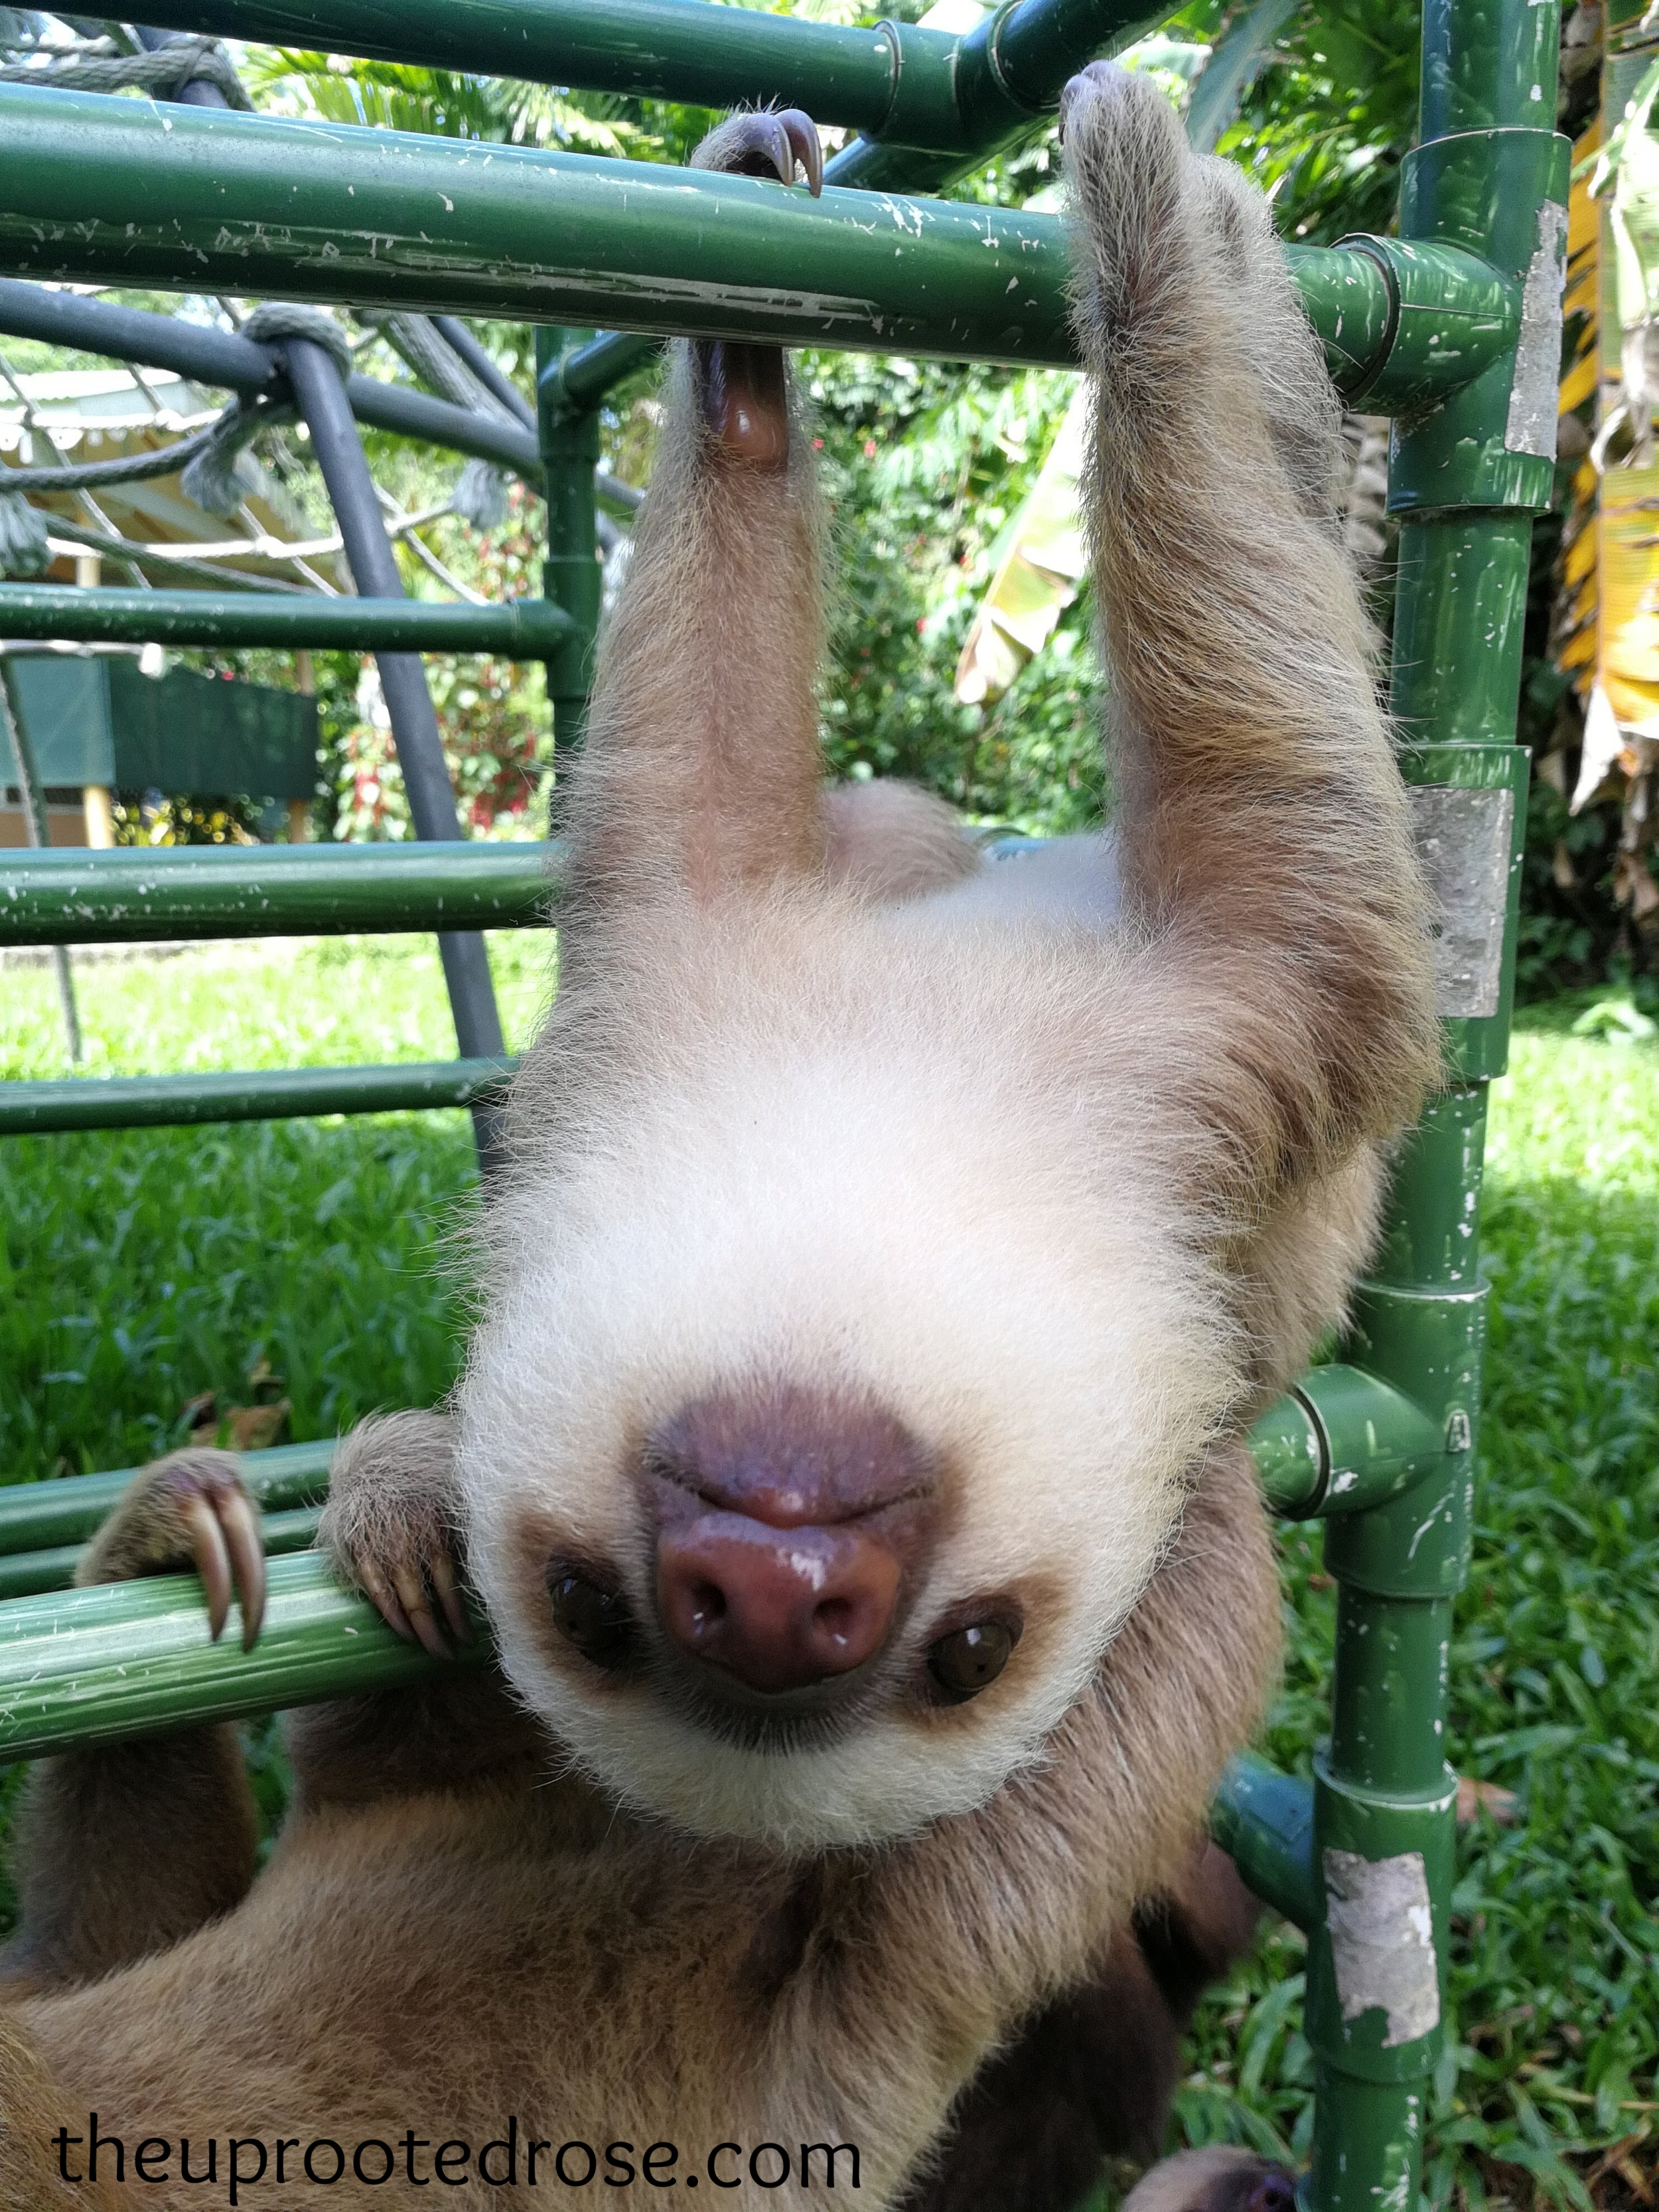 To learn more about sloths, click  here .